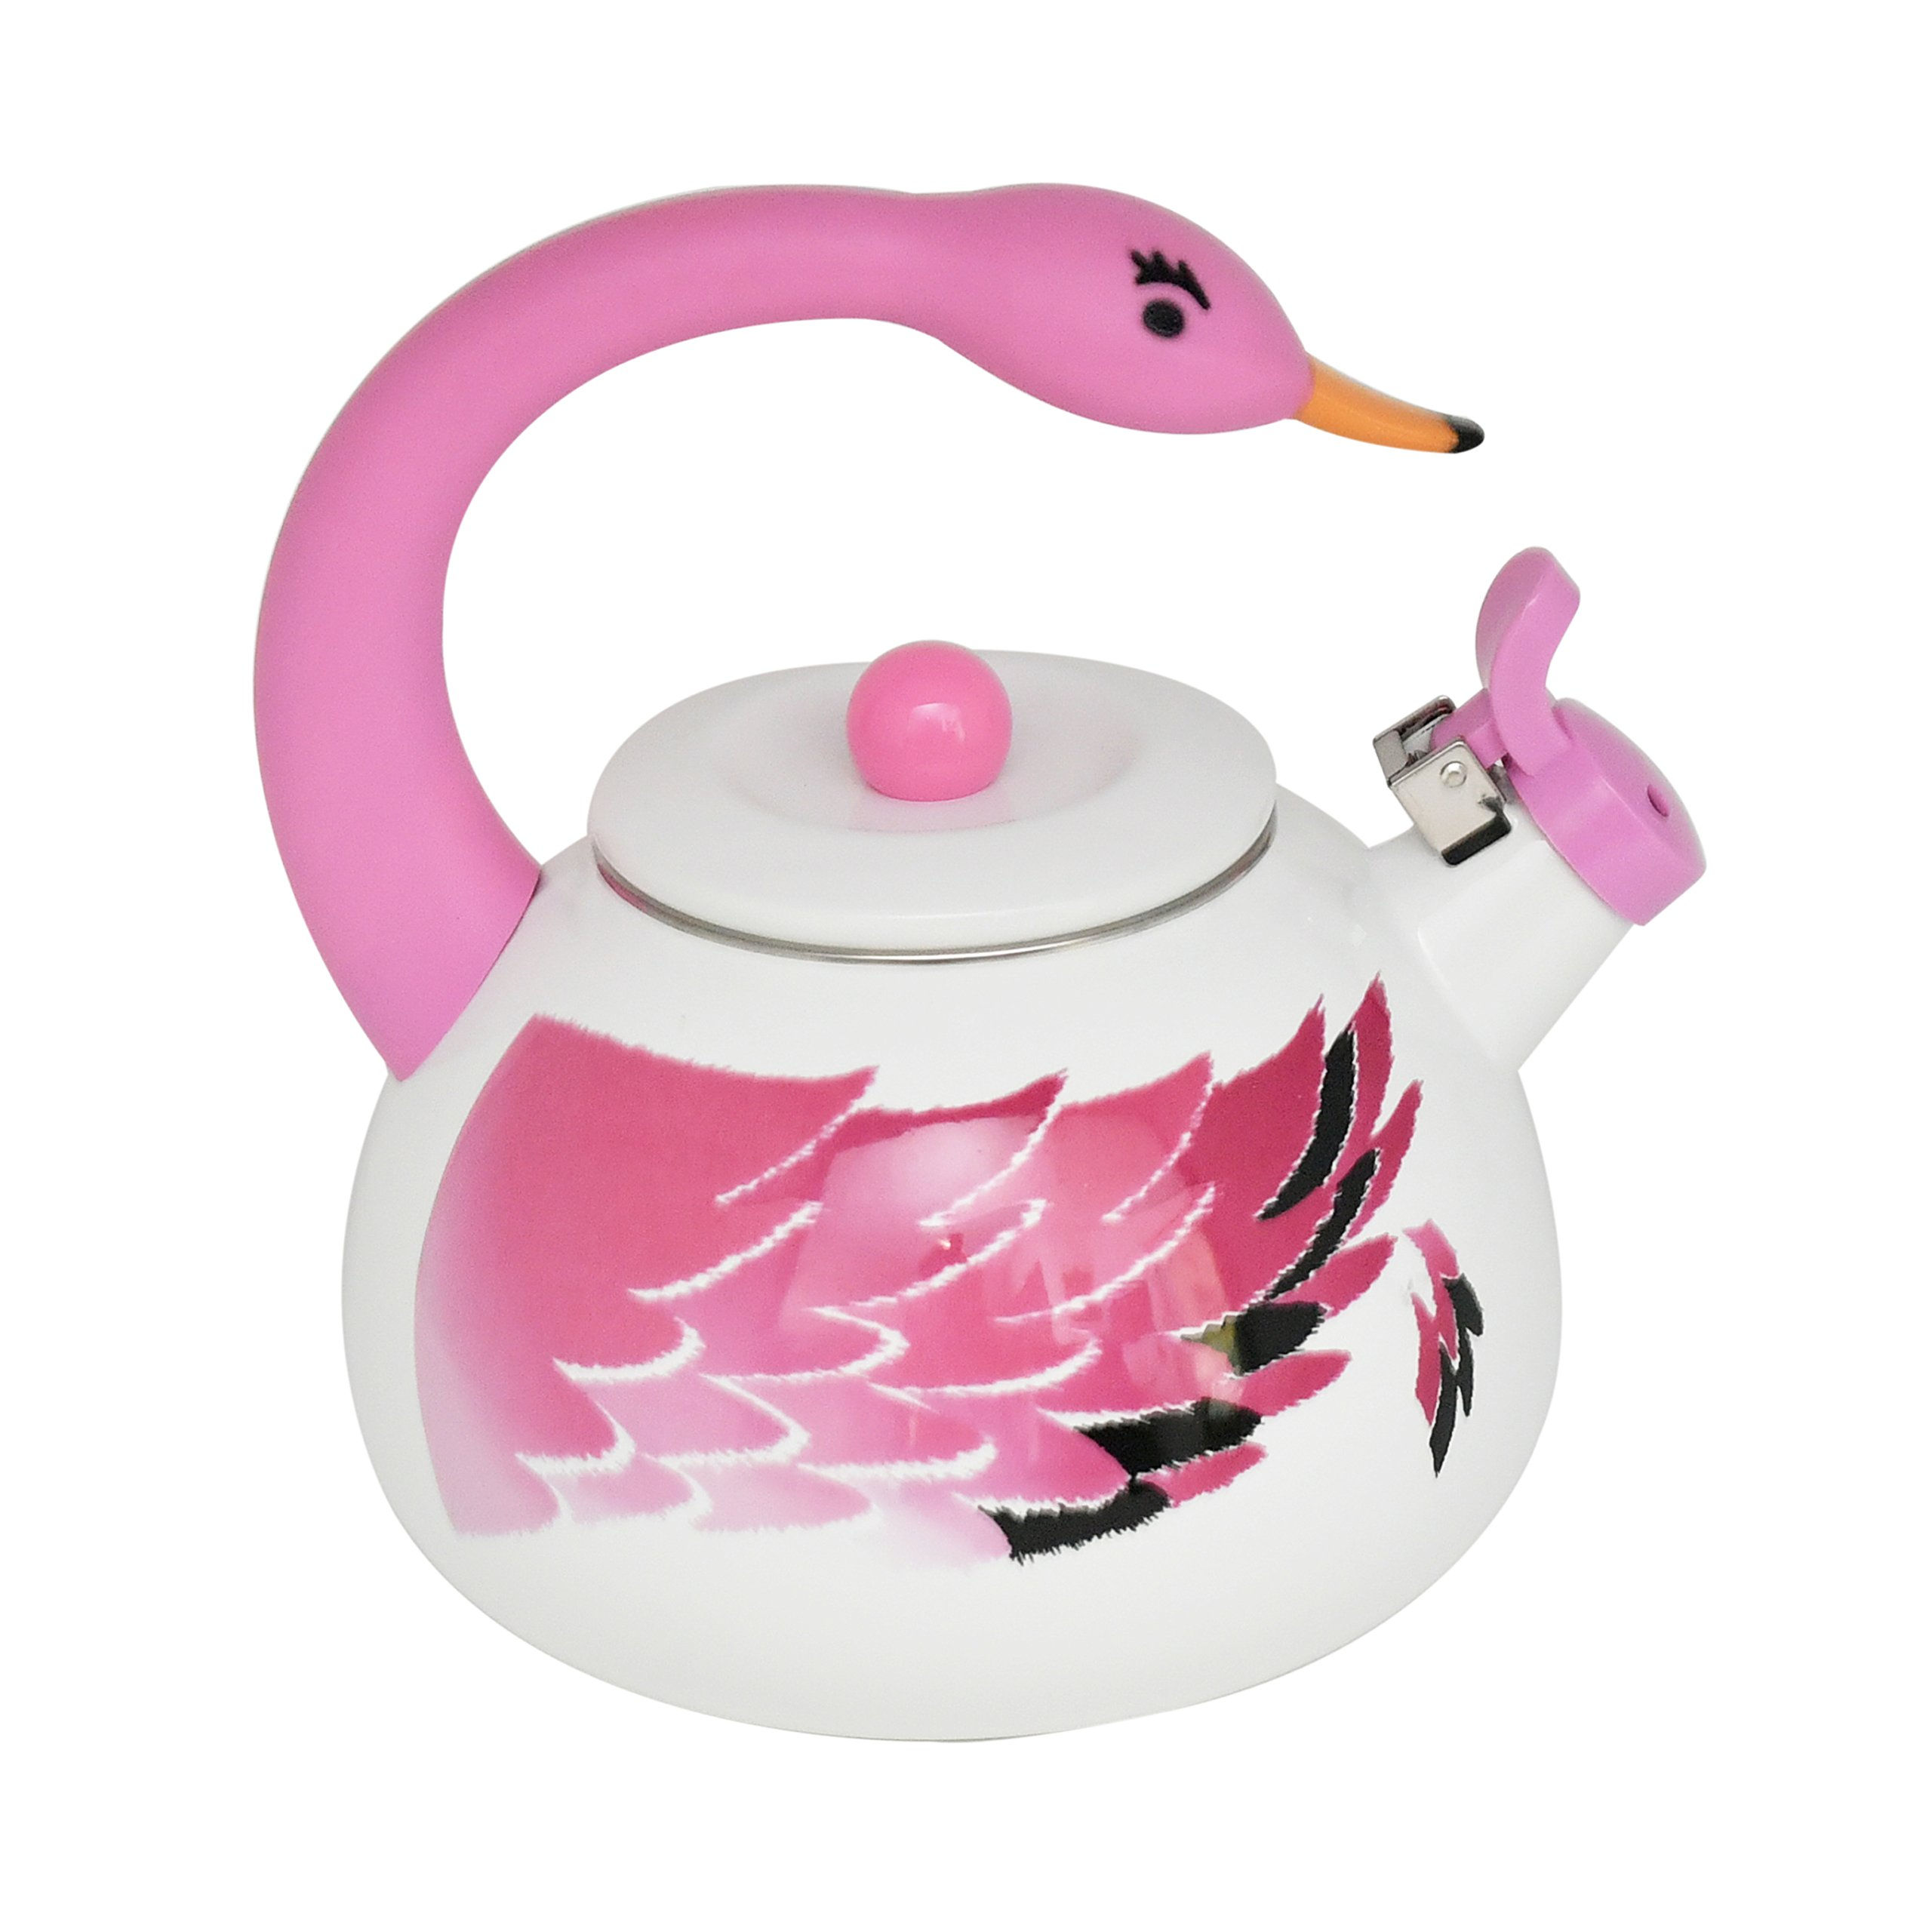 HOME-X Pink Flamingo Whistling Tea Kettle, Animal Teapot, Kitchen Accessories and Décor by Home-X